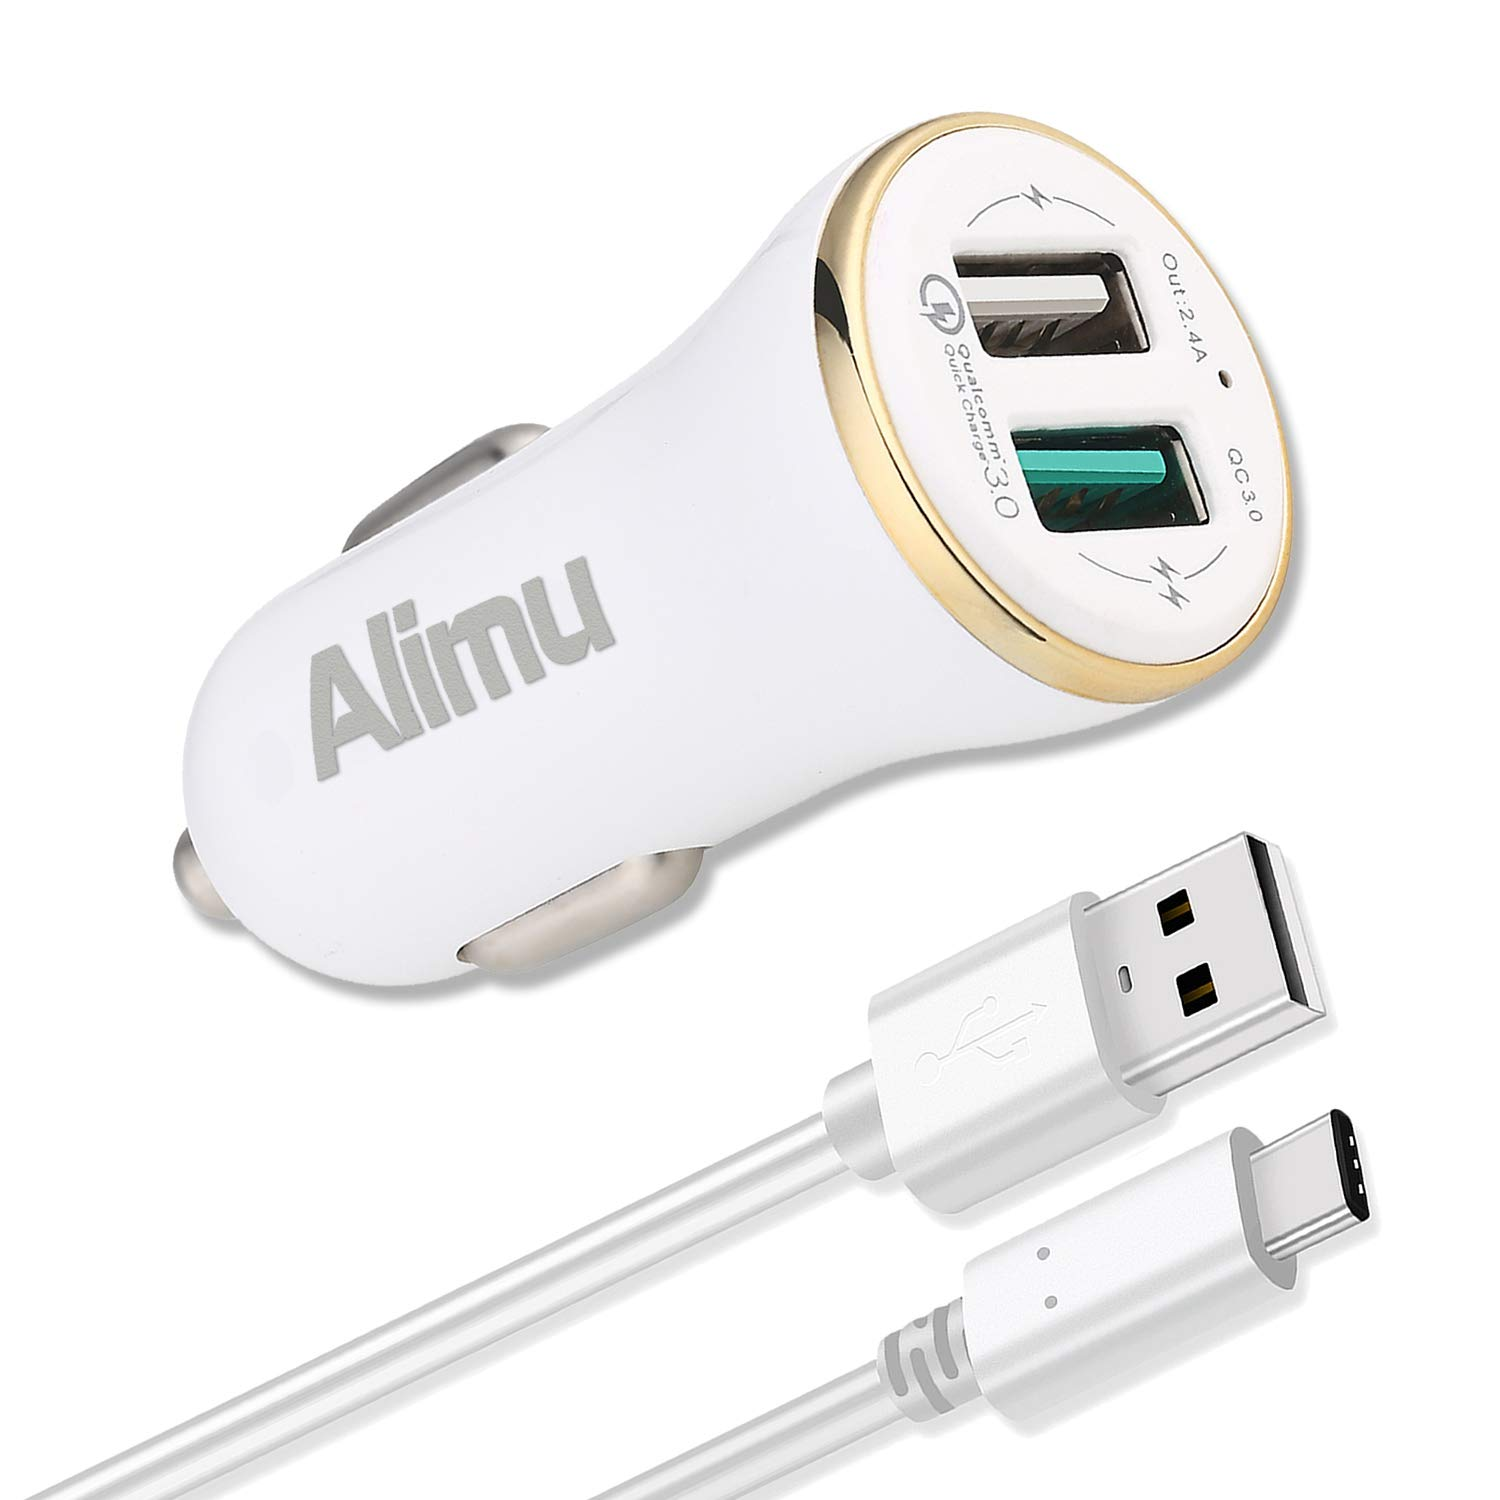 Alimu Dual USB Rapid Fast Car Charger 30W and USB C Cable Works with LG G5,G6,V20,V30,HTC 10 U11,Samsung Galaxy S8 S9 Plus,Note 8,iPad,iPhone and More 4326583884 Quick Charge 3.0 USB Type C Car Charger